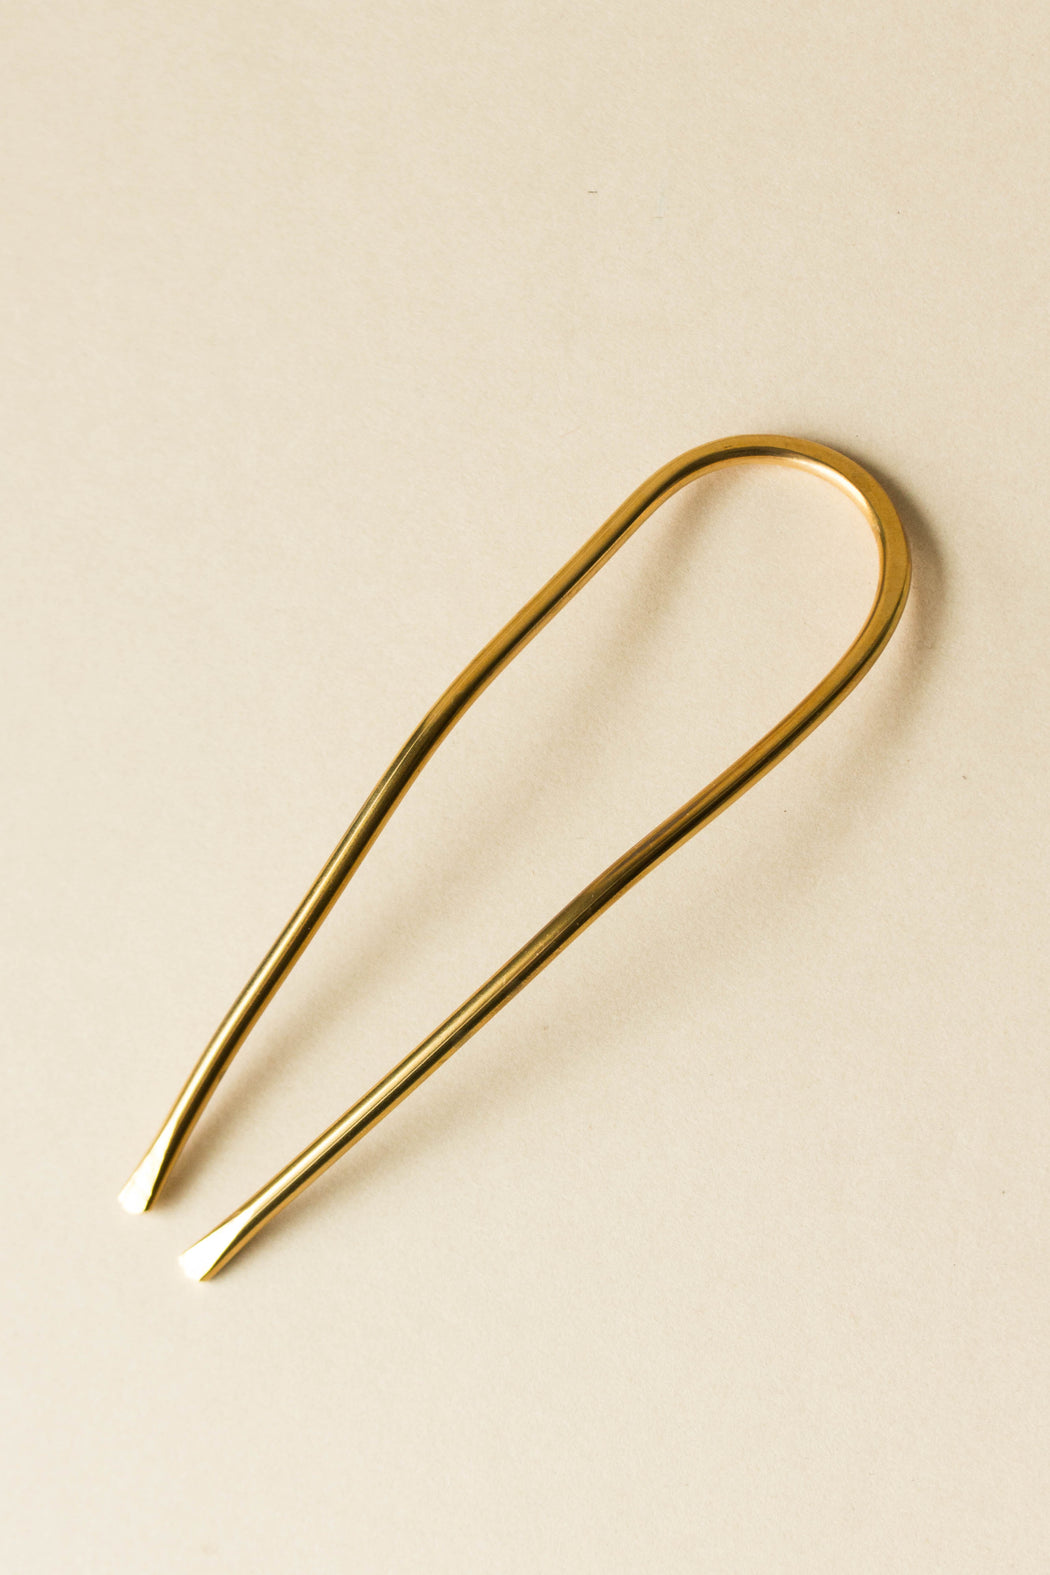 Desert Rose Jewelry - Hair Fork